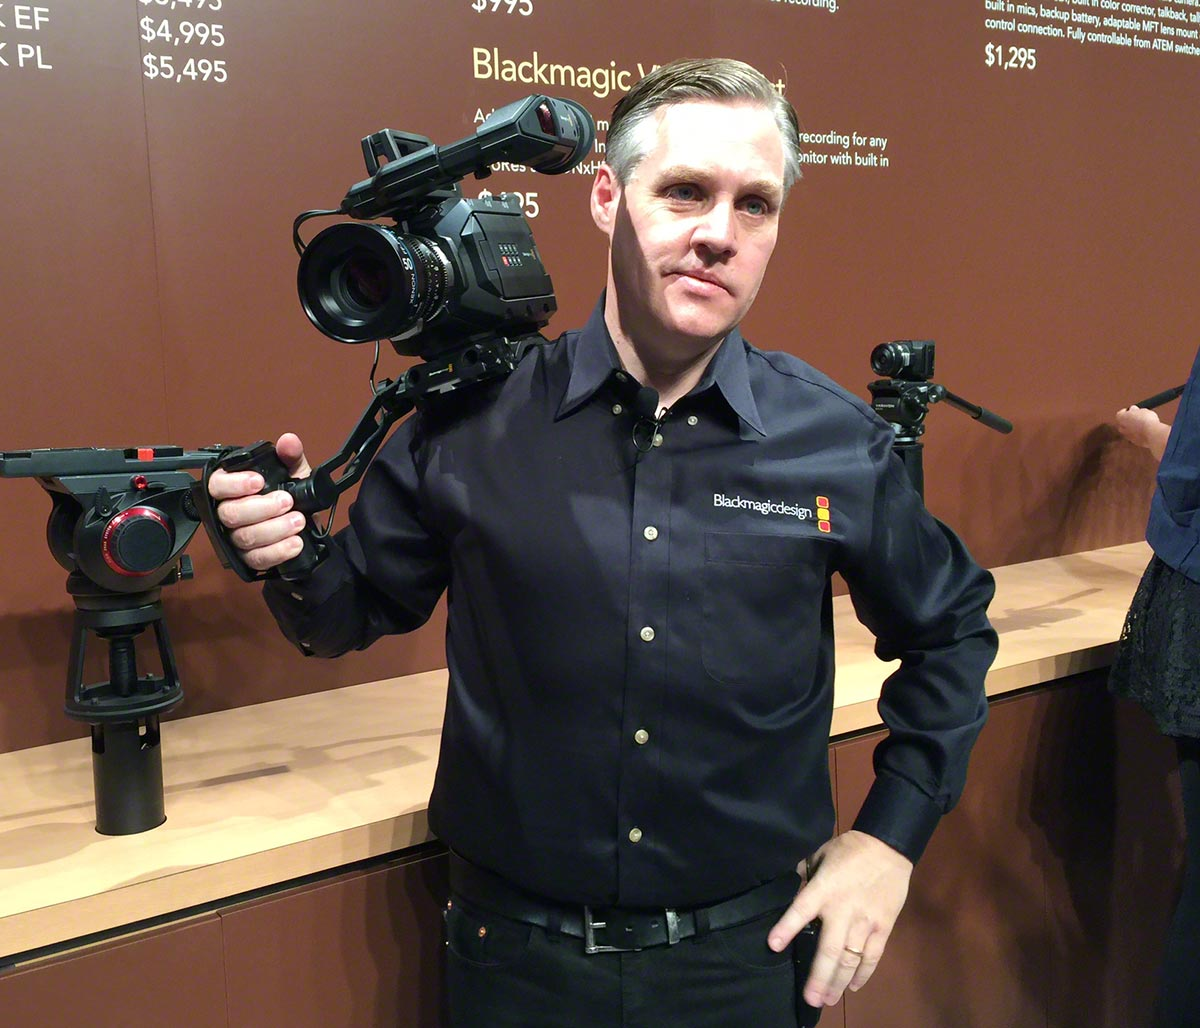 blackmagic NAB 2015 06